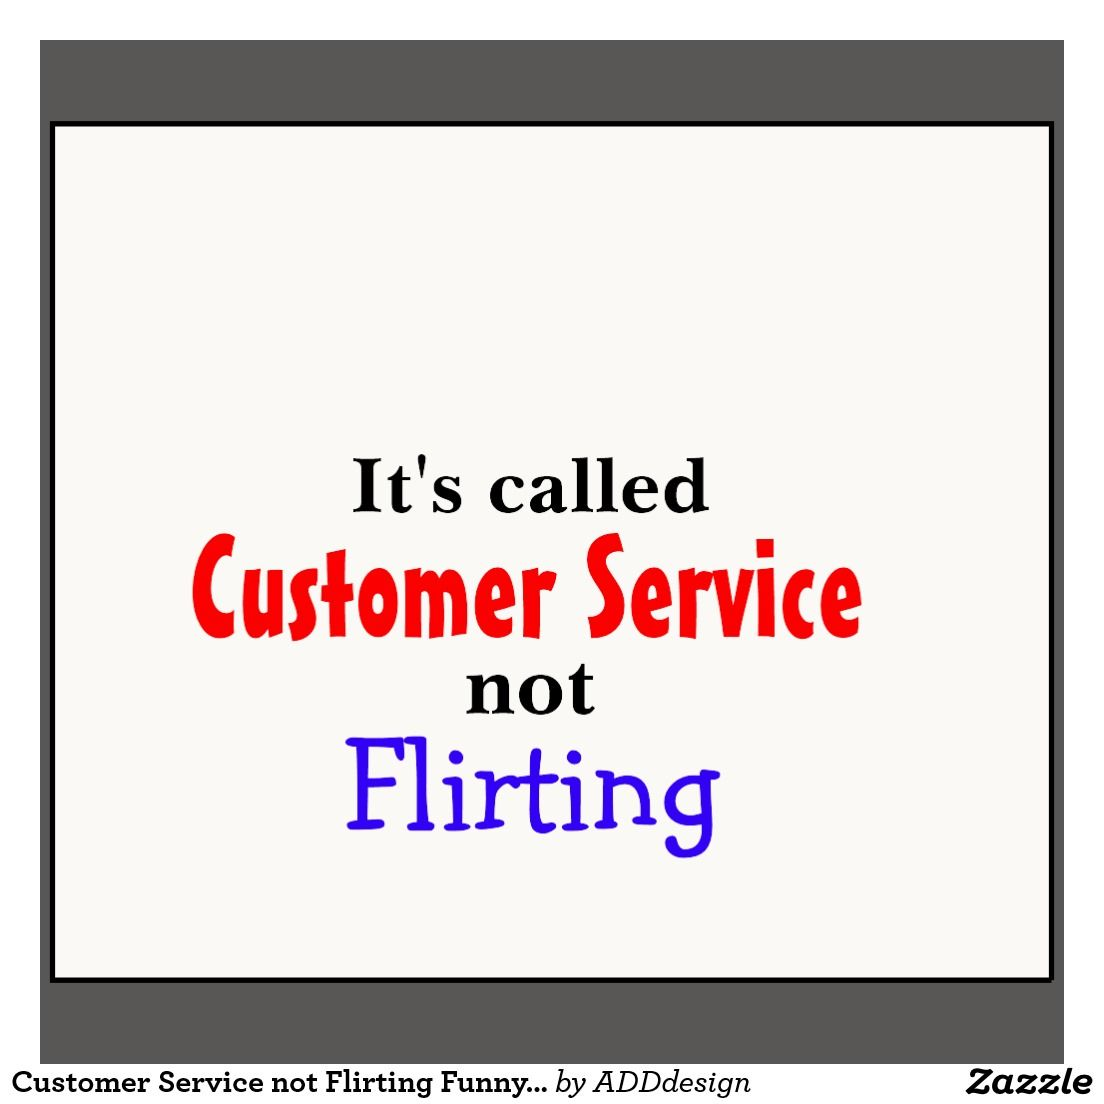 Funny Customer Service Quotes Funny Customer Service Ecards  Google Search  Quotes